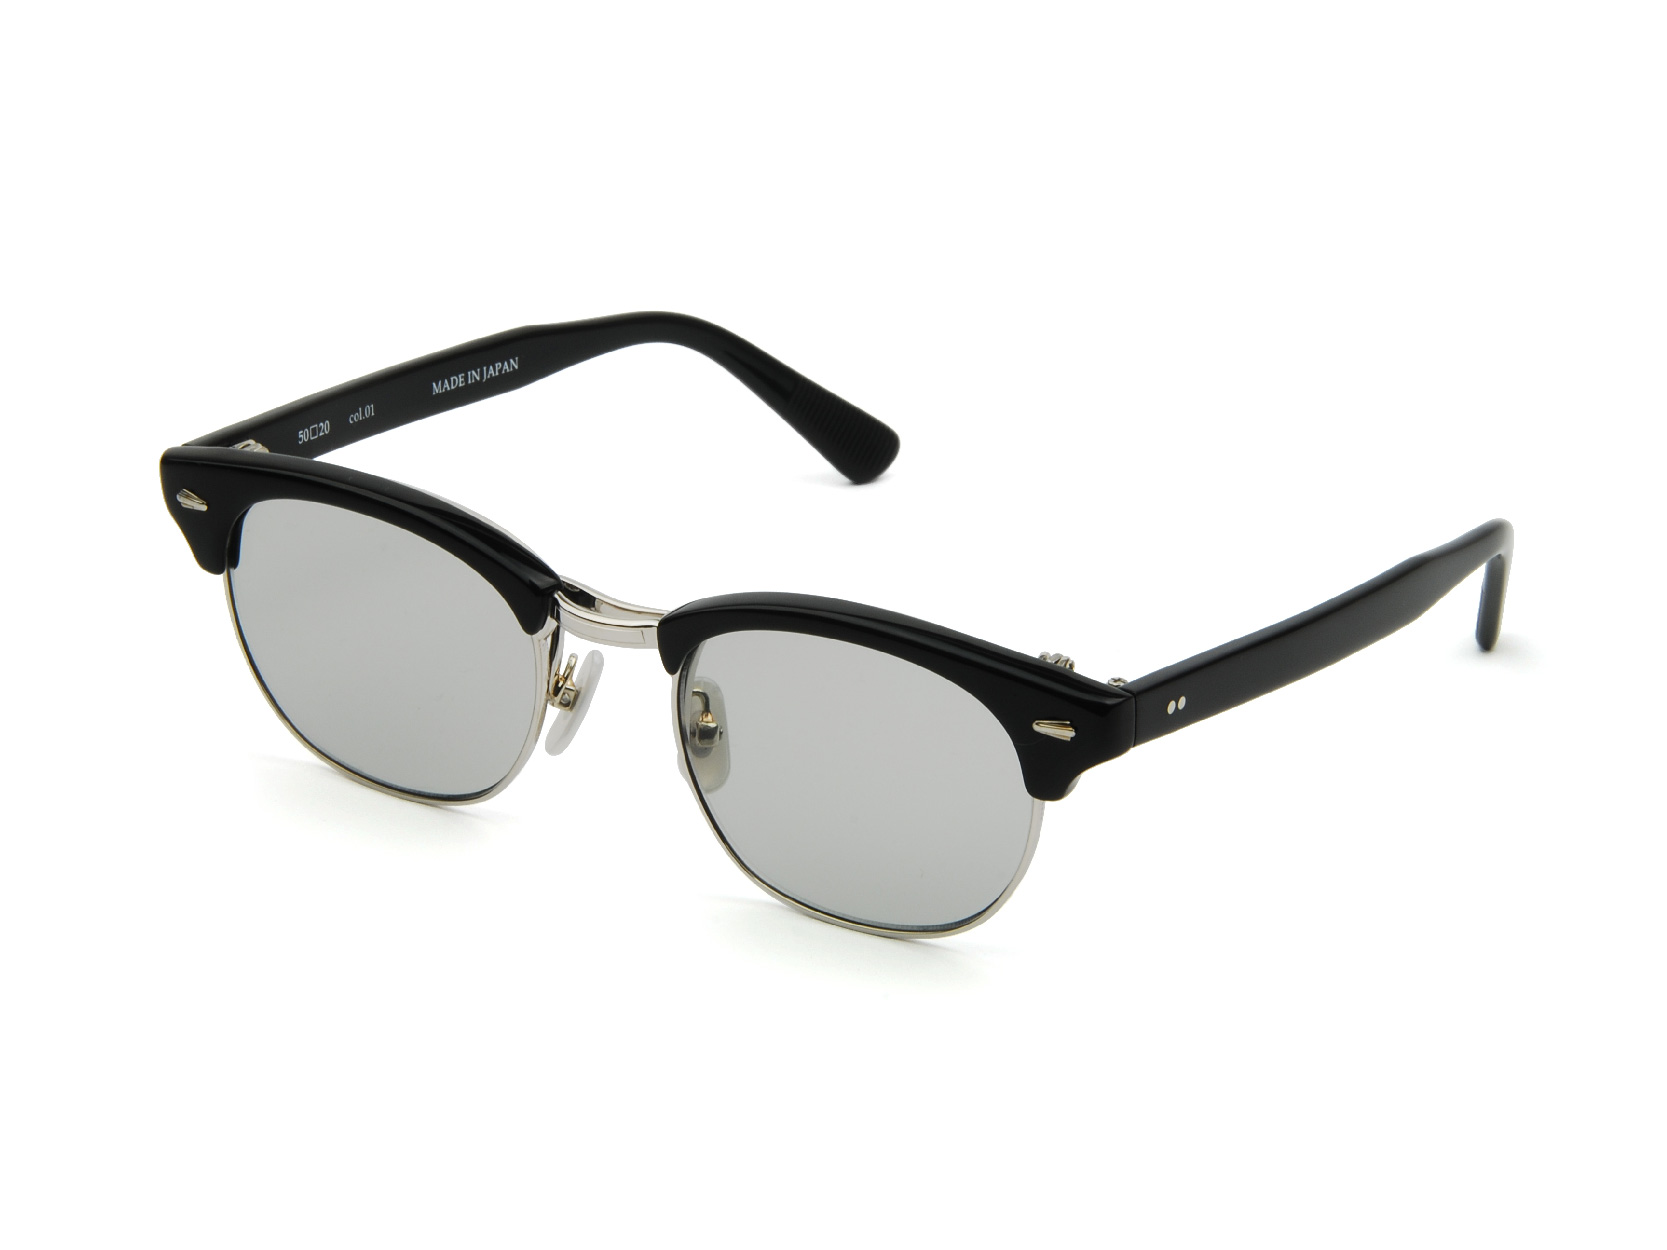 Taylor S01 ( Sold Out )